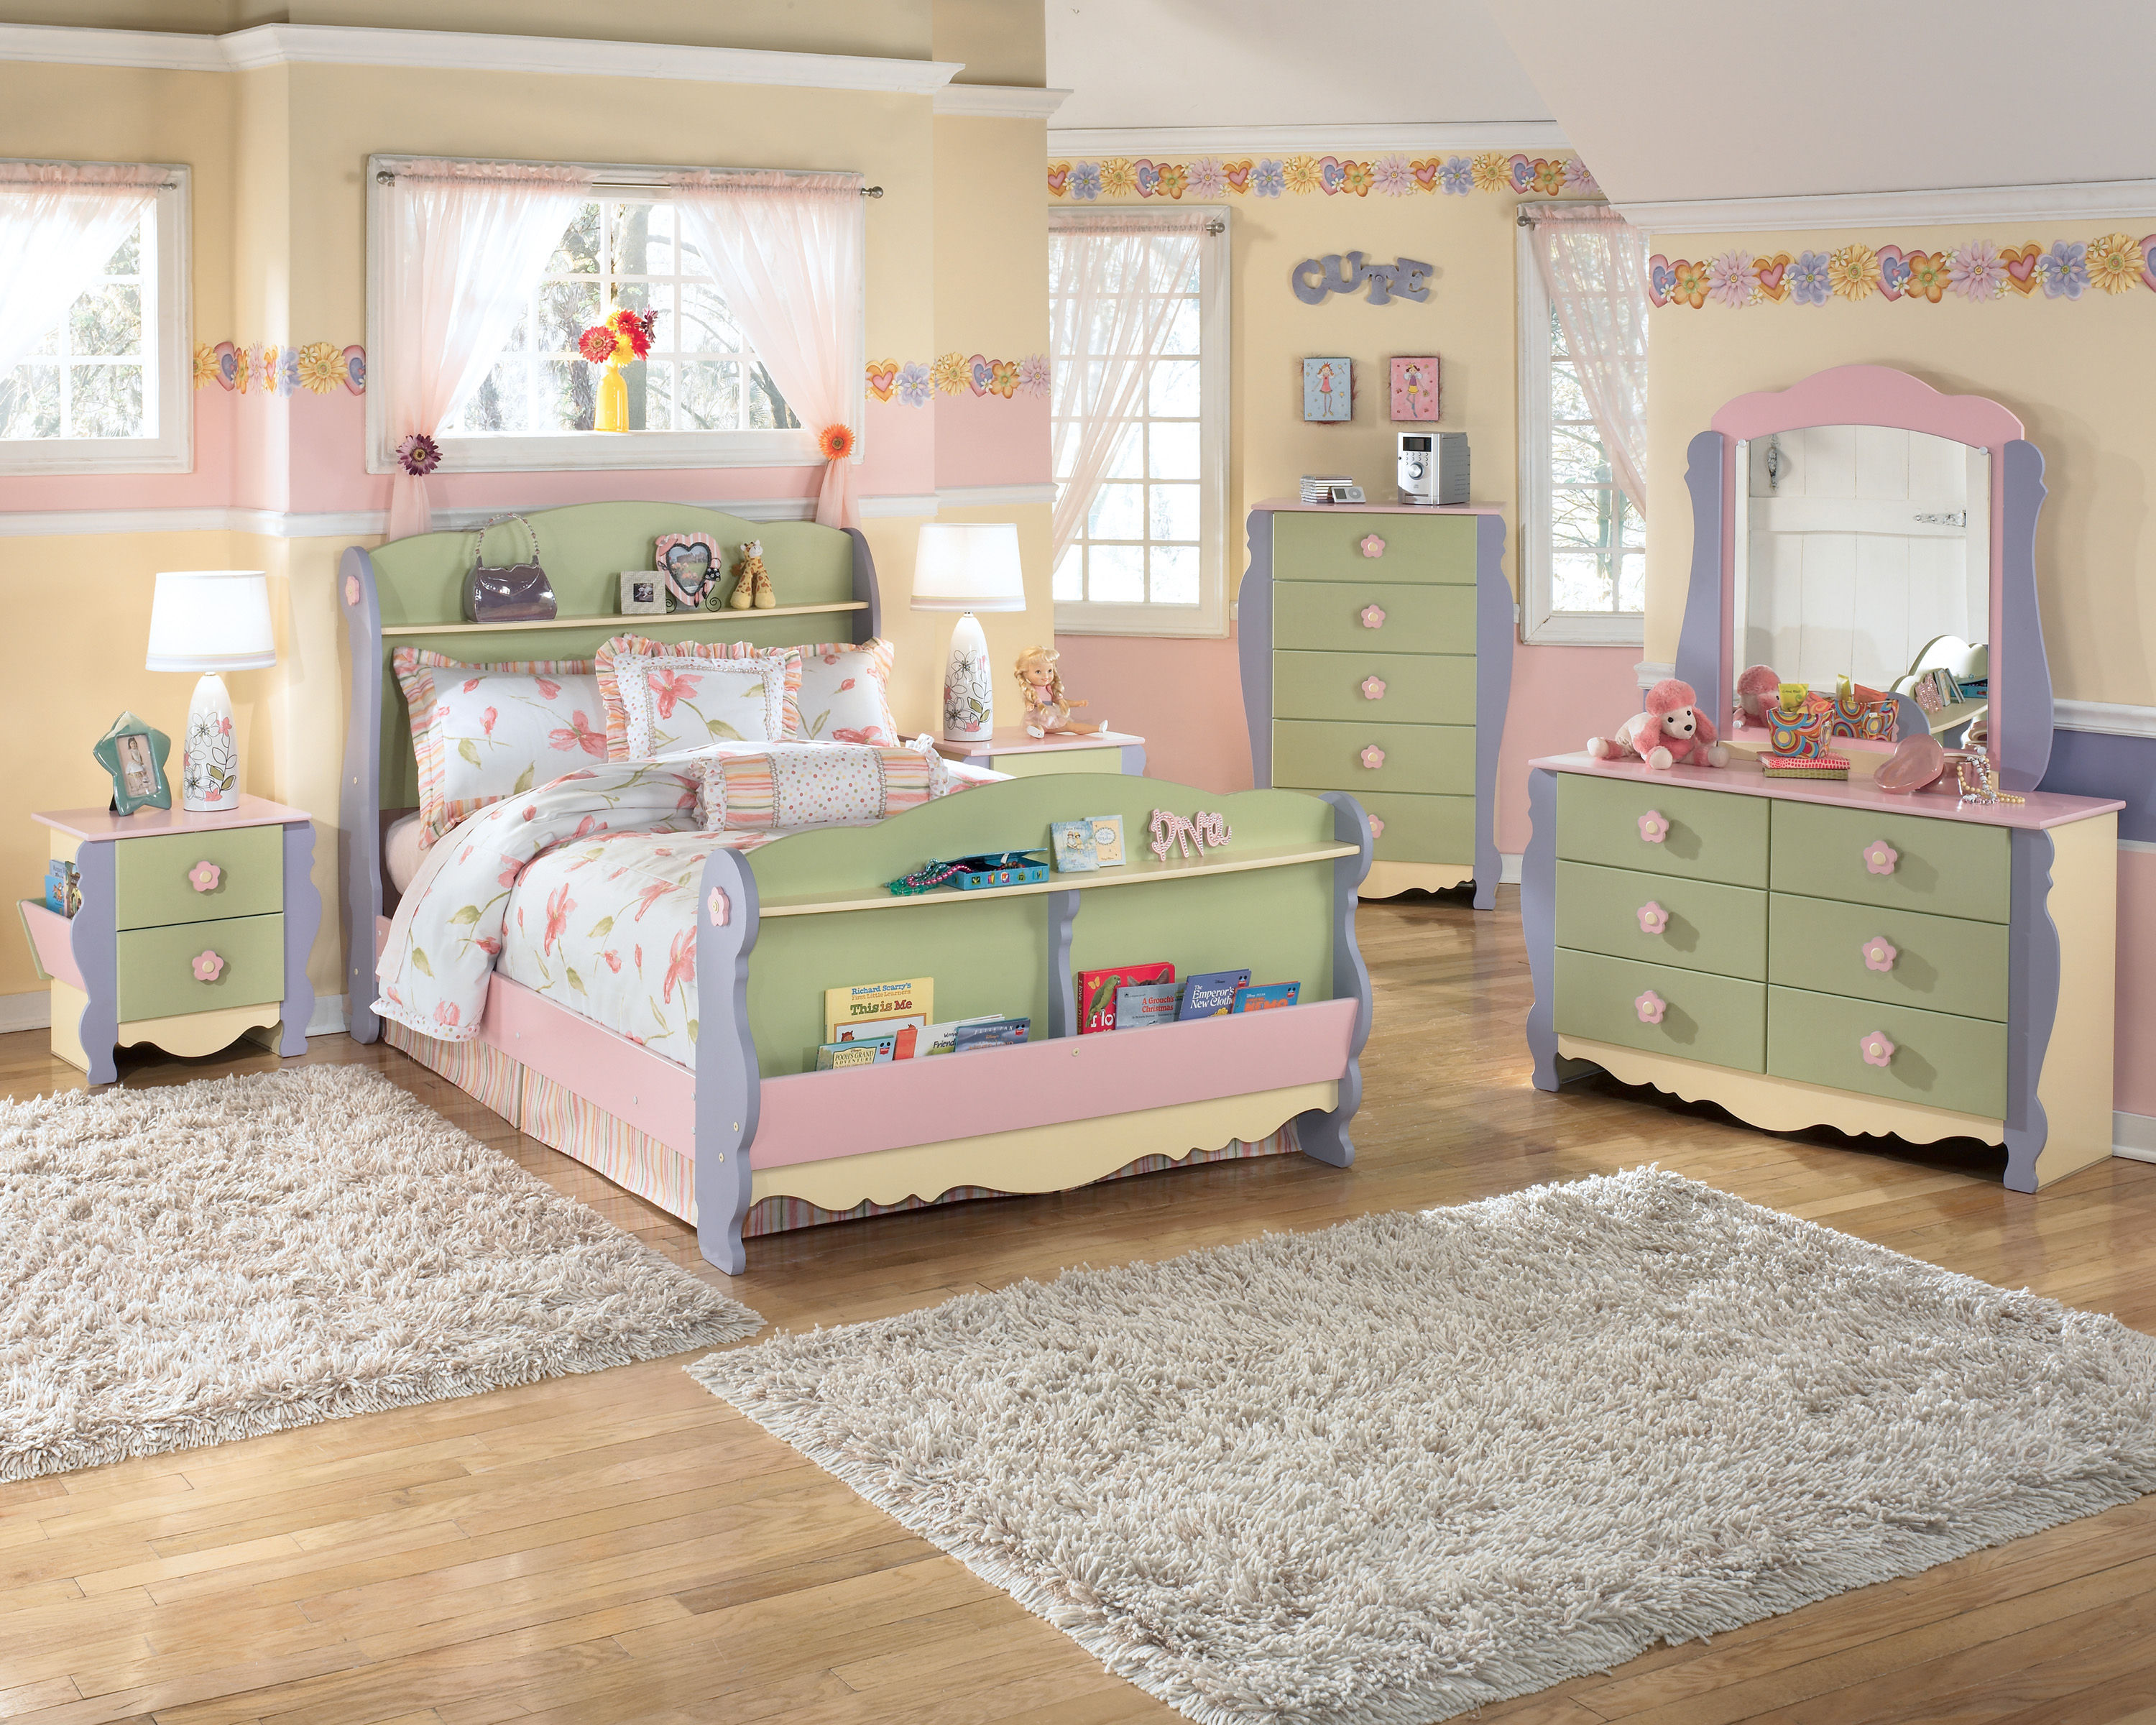 Doll House 4pc Kids Bedroom Set W Twin Bed The Classy Home